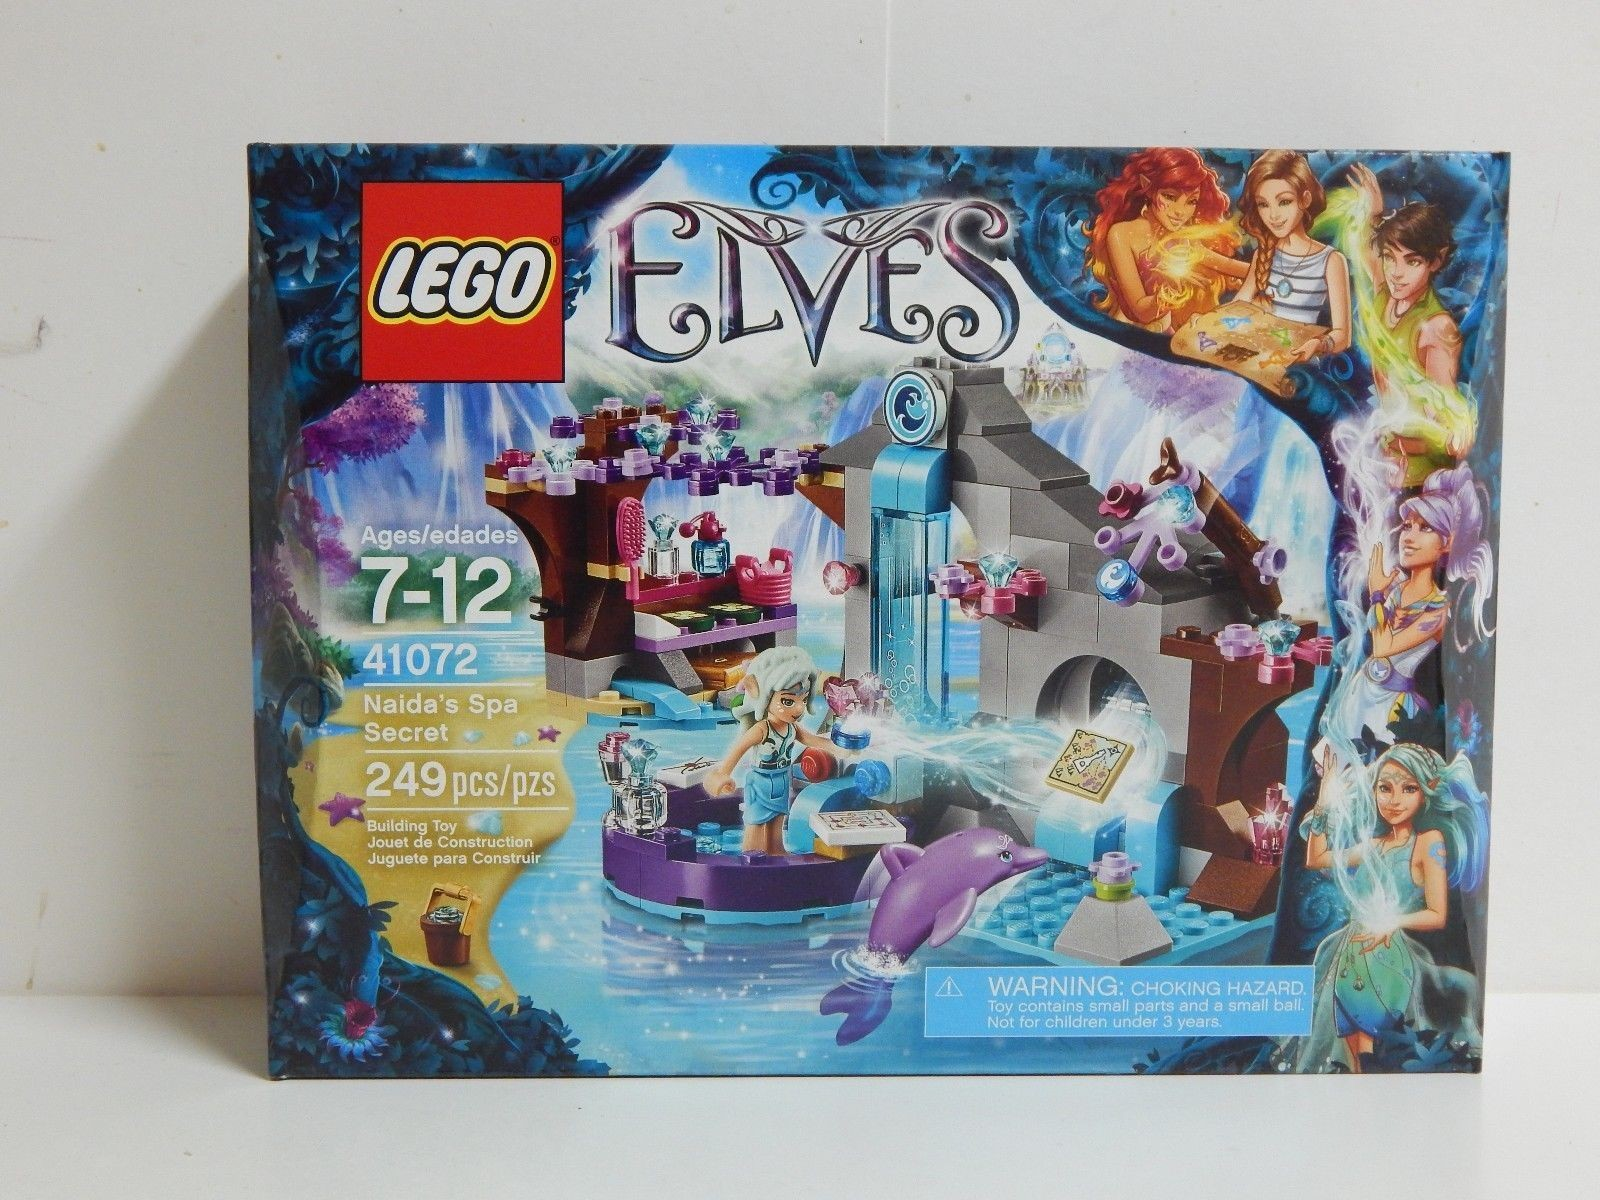 Lego March Calendar Actual Lego Elves Naida S Spa Secret Factory Sealed Retired sold Out Of Lego March Calendar Más Actual 9 Best Up Ing Kids Programs Images On Pinterest